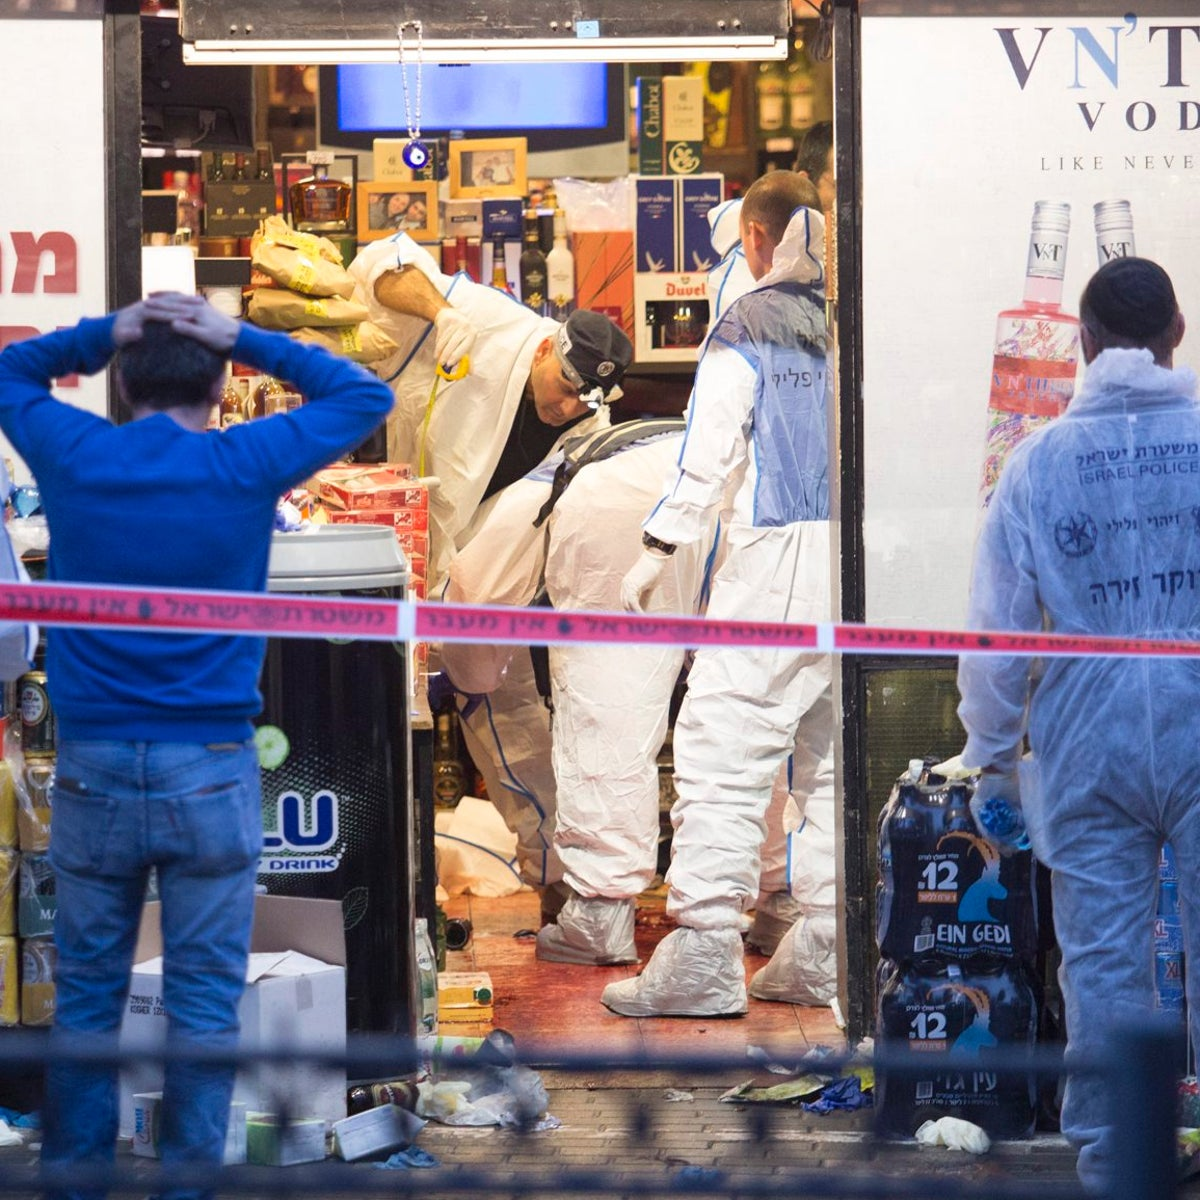 The aftermath of a stabbing attack in a liquor store in Petah Tikva, March 8, 2016.